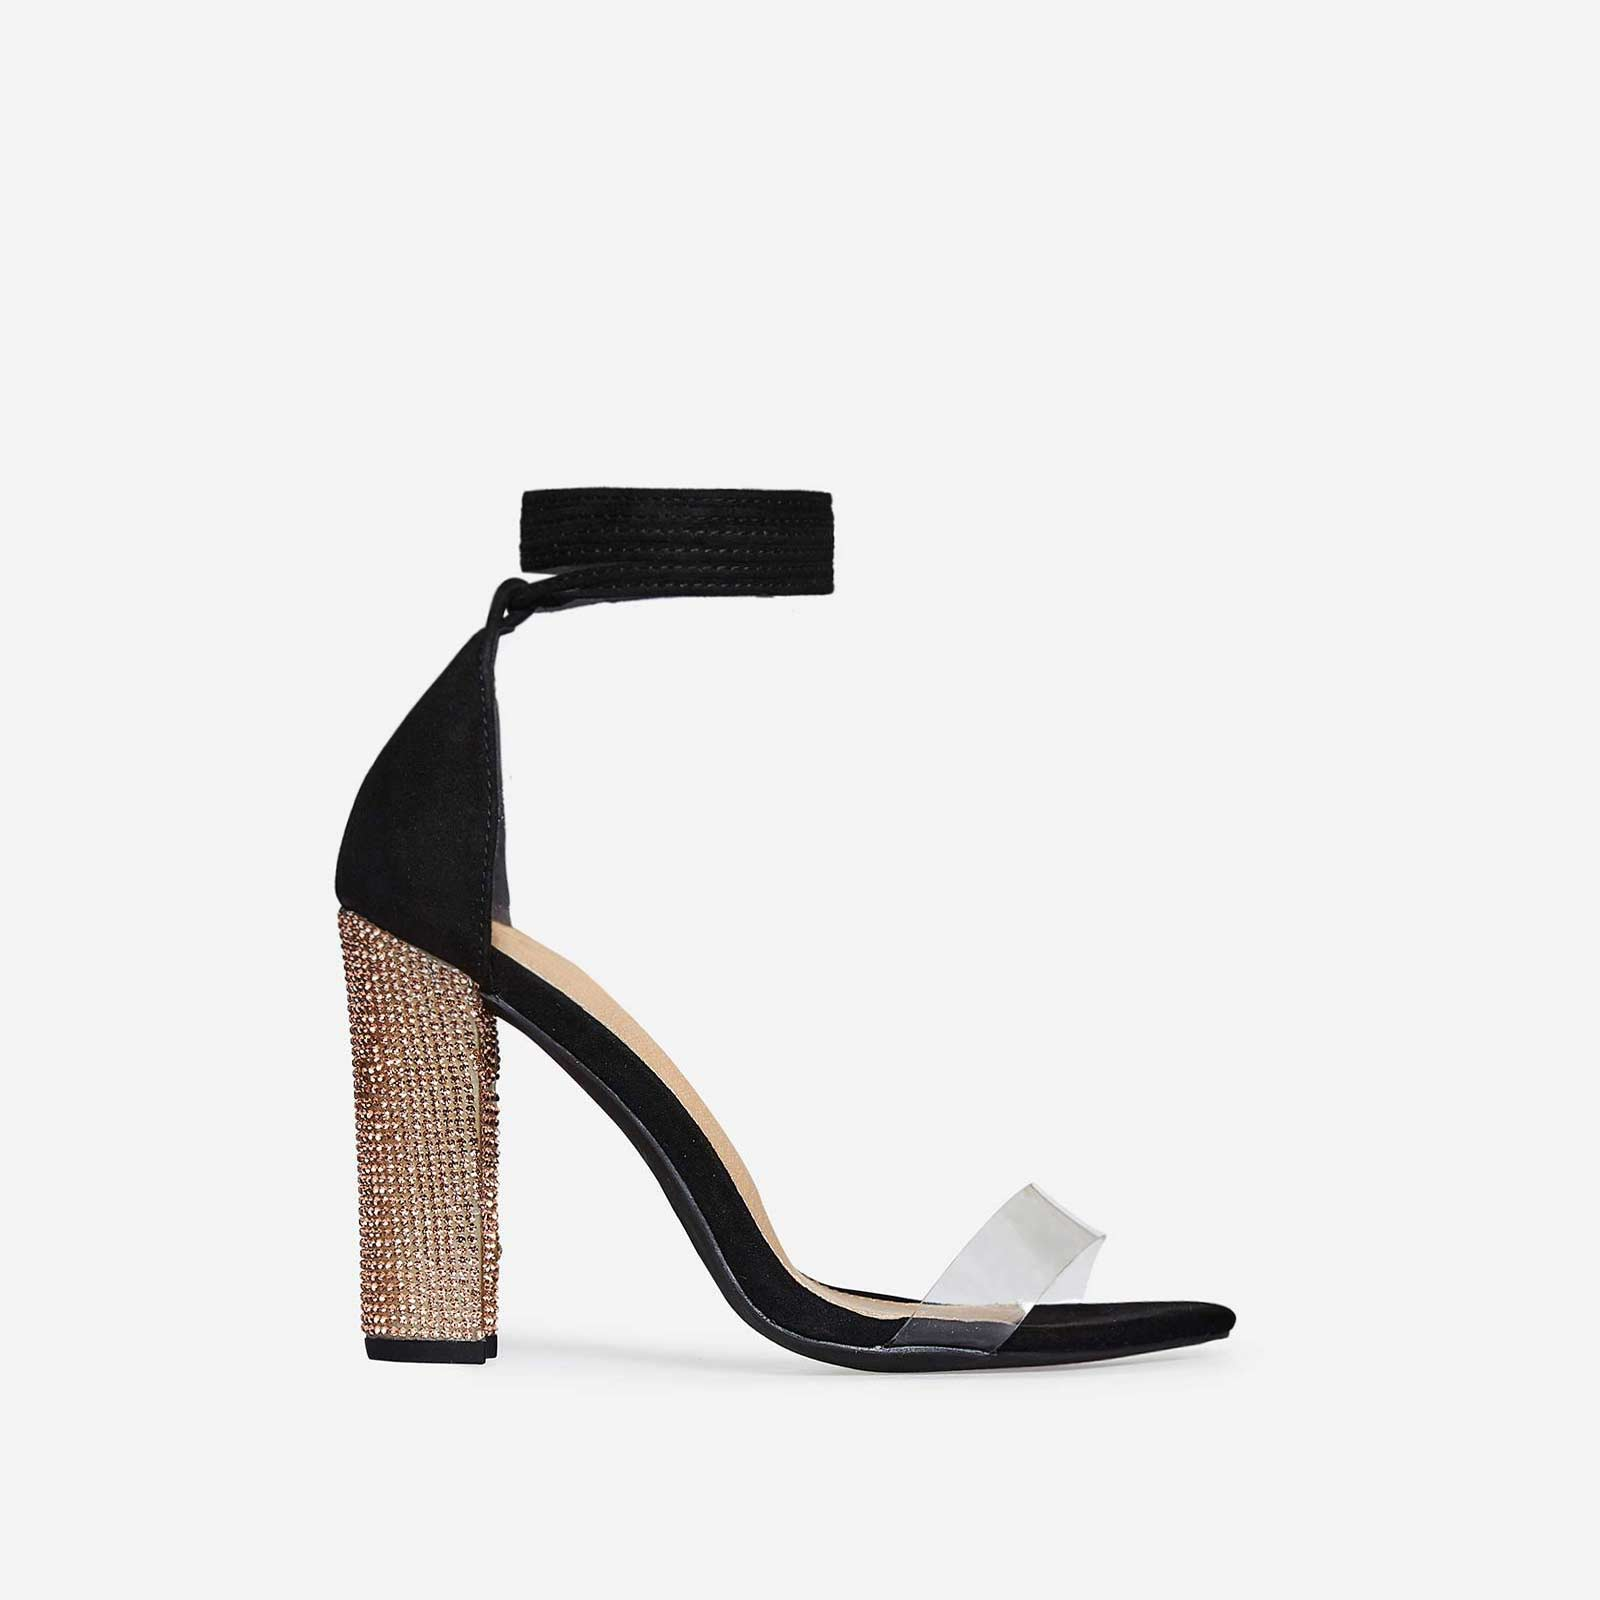 Harriet Lace Up Rose Gold Diamante Heel In Black Faux Suede